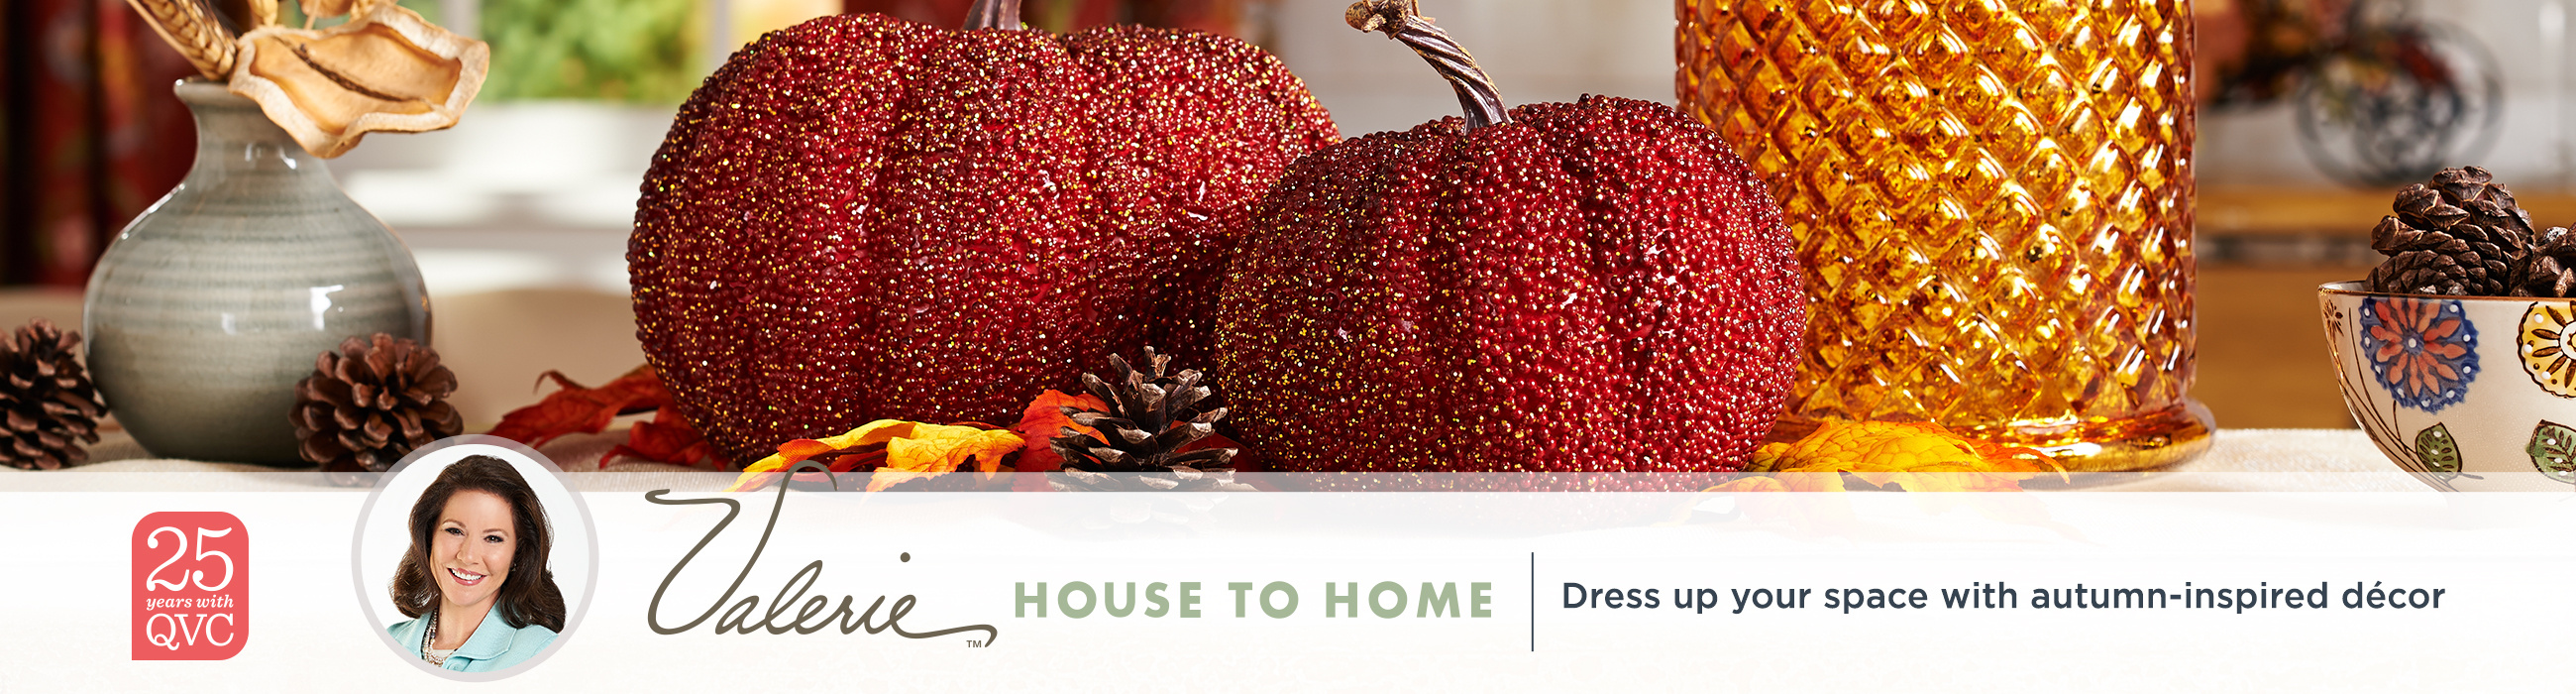 Valerie House to Home. Dress up your space with autumn-inspired décor.